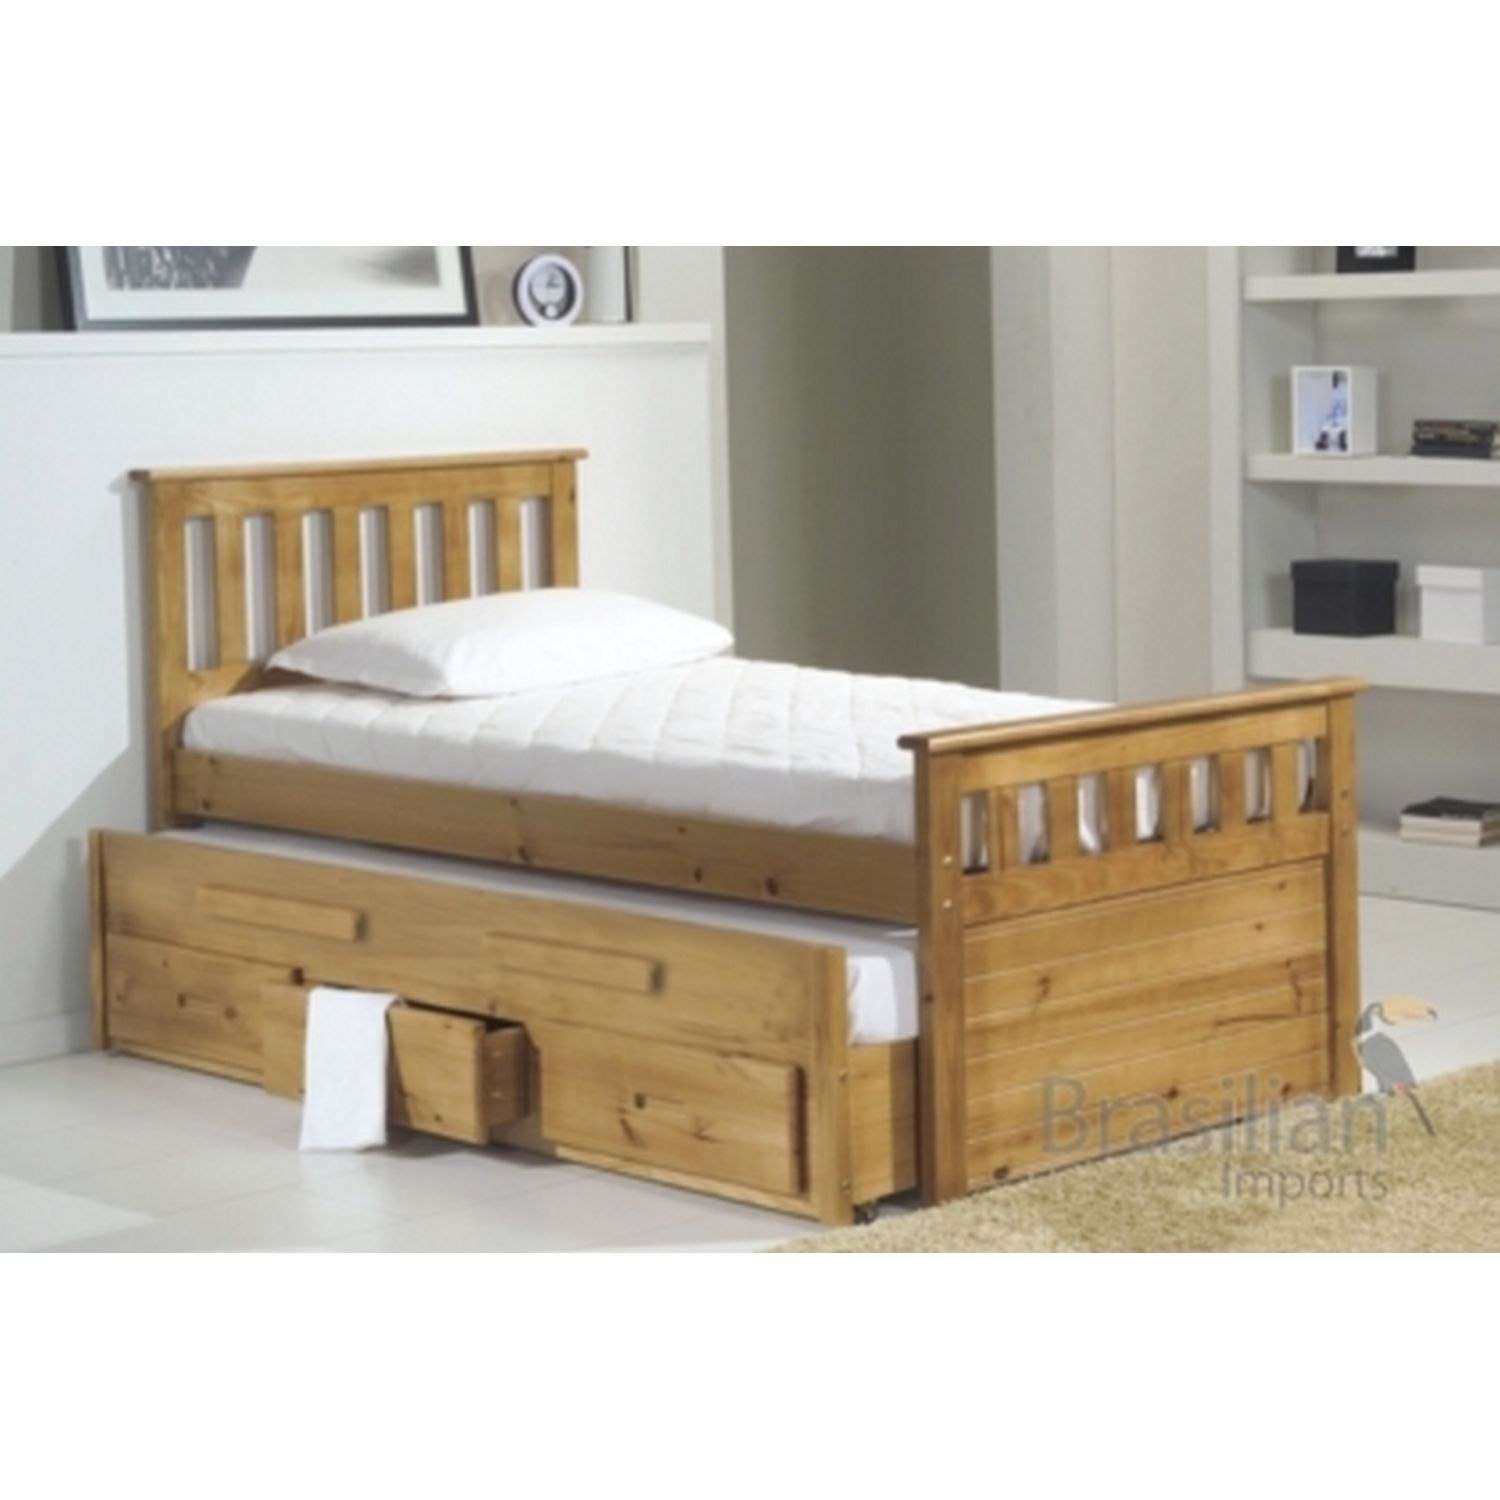 The Bergamo Captains Bed Is Made Of Solid Pine With Pull Out